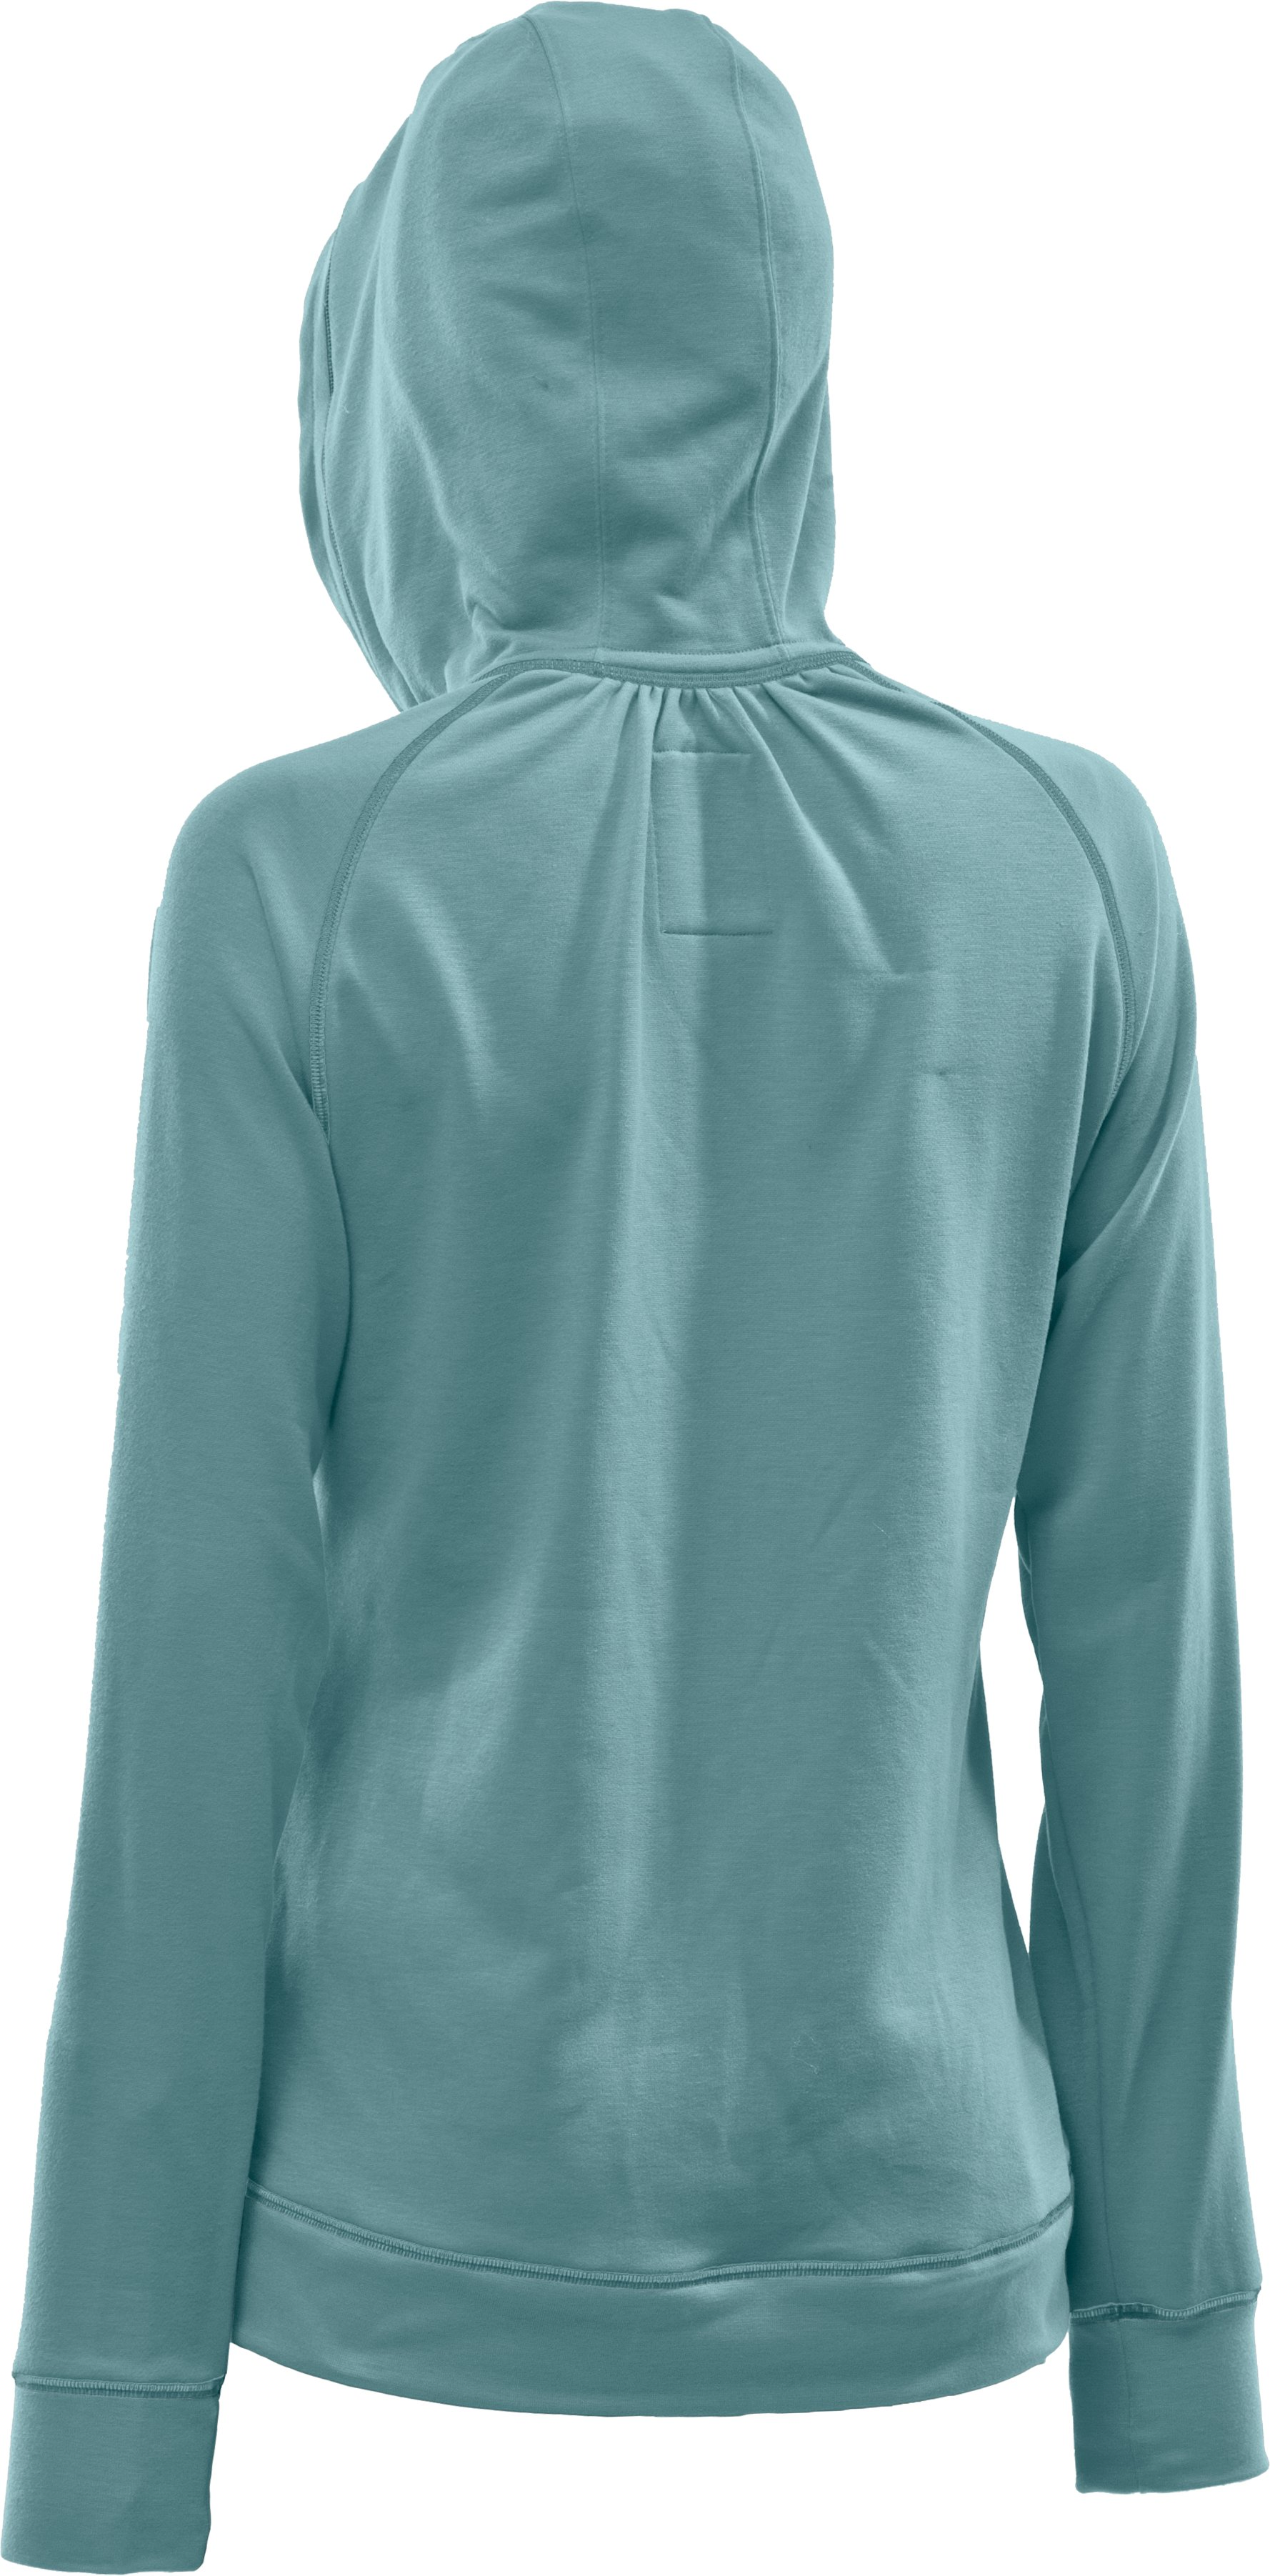 Women's Terry Hoodie, Seaport